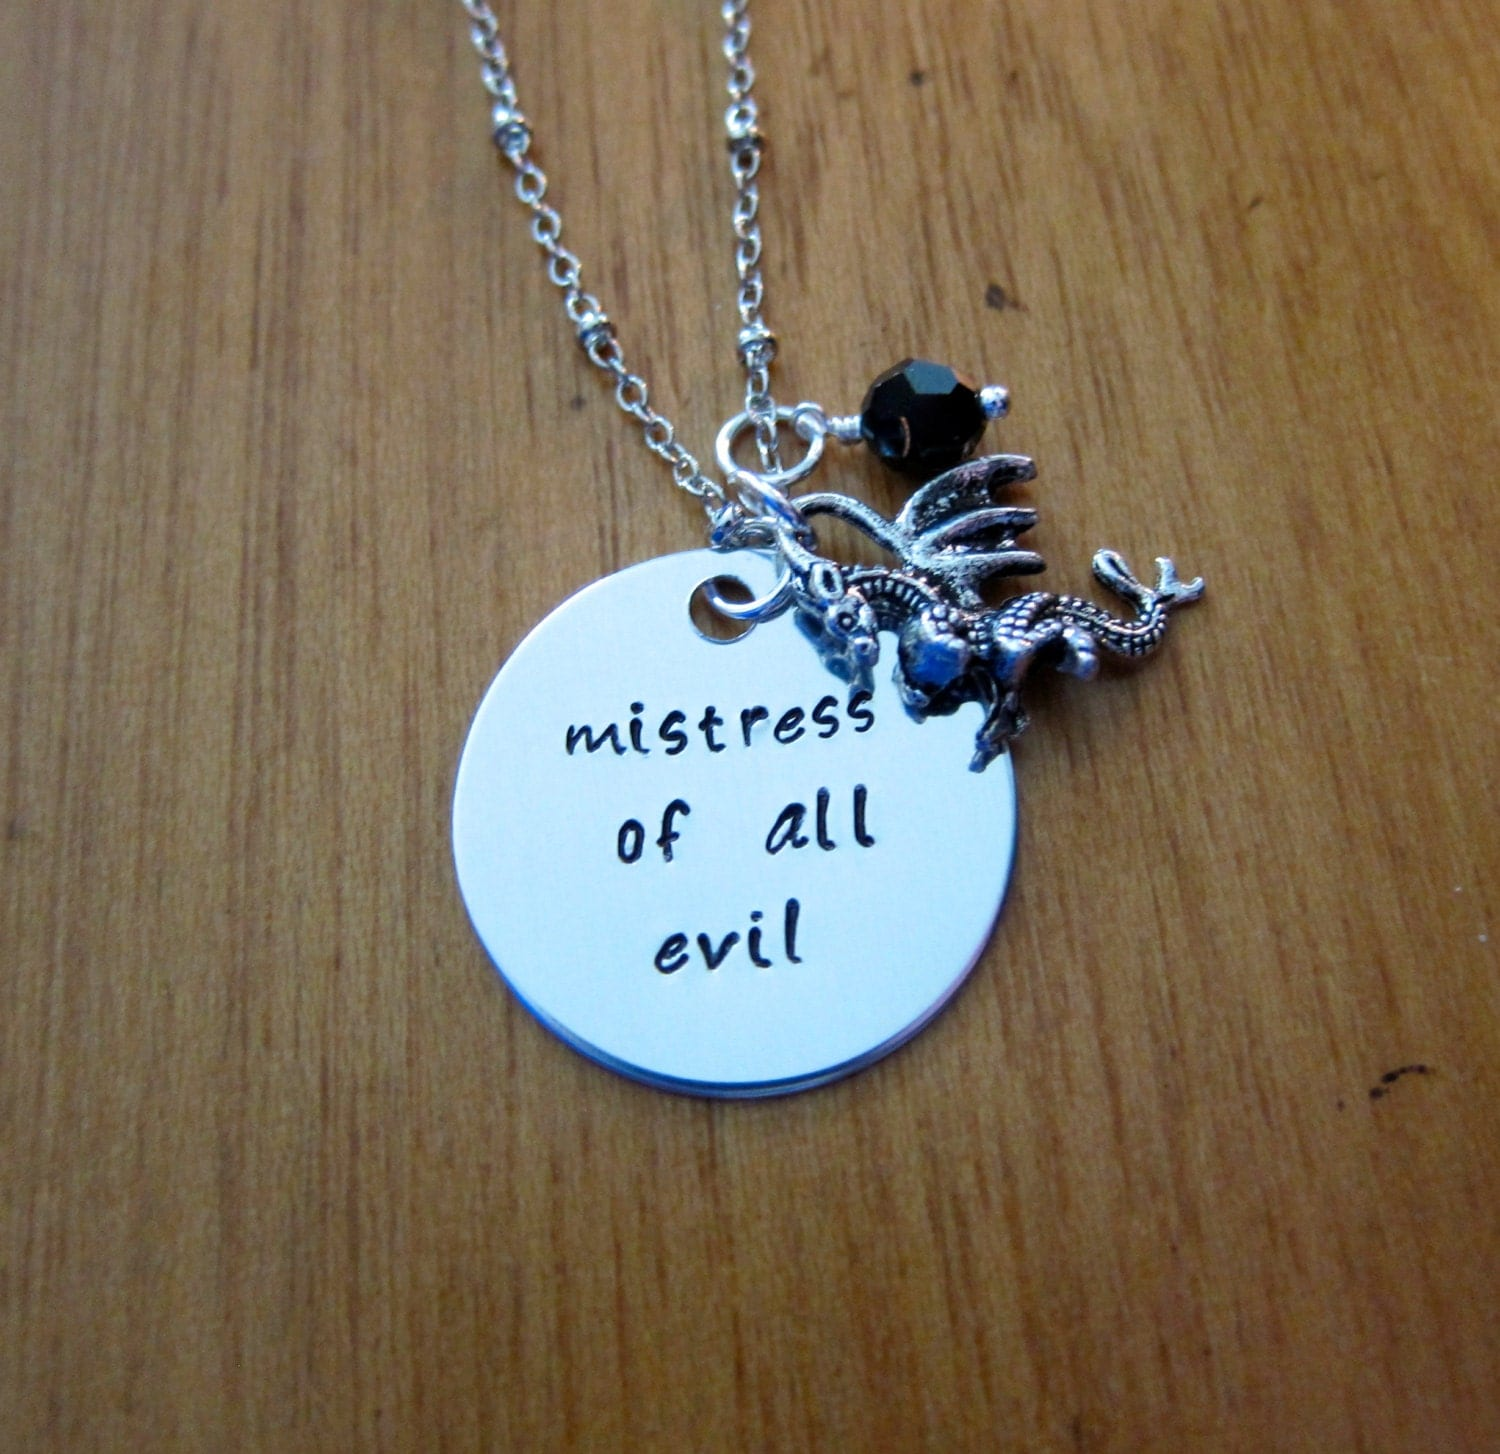 Sleeping Beauty Inspired Necklace Villain Maleficent